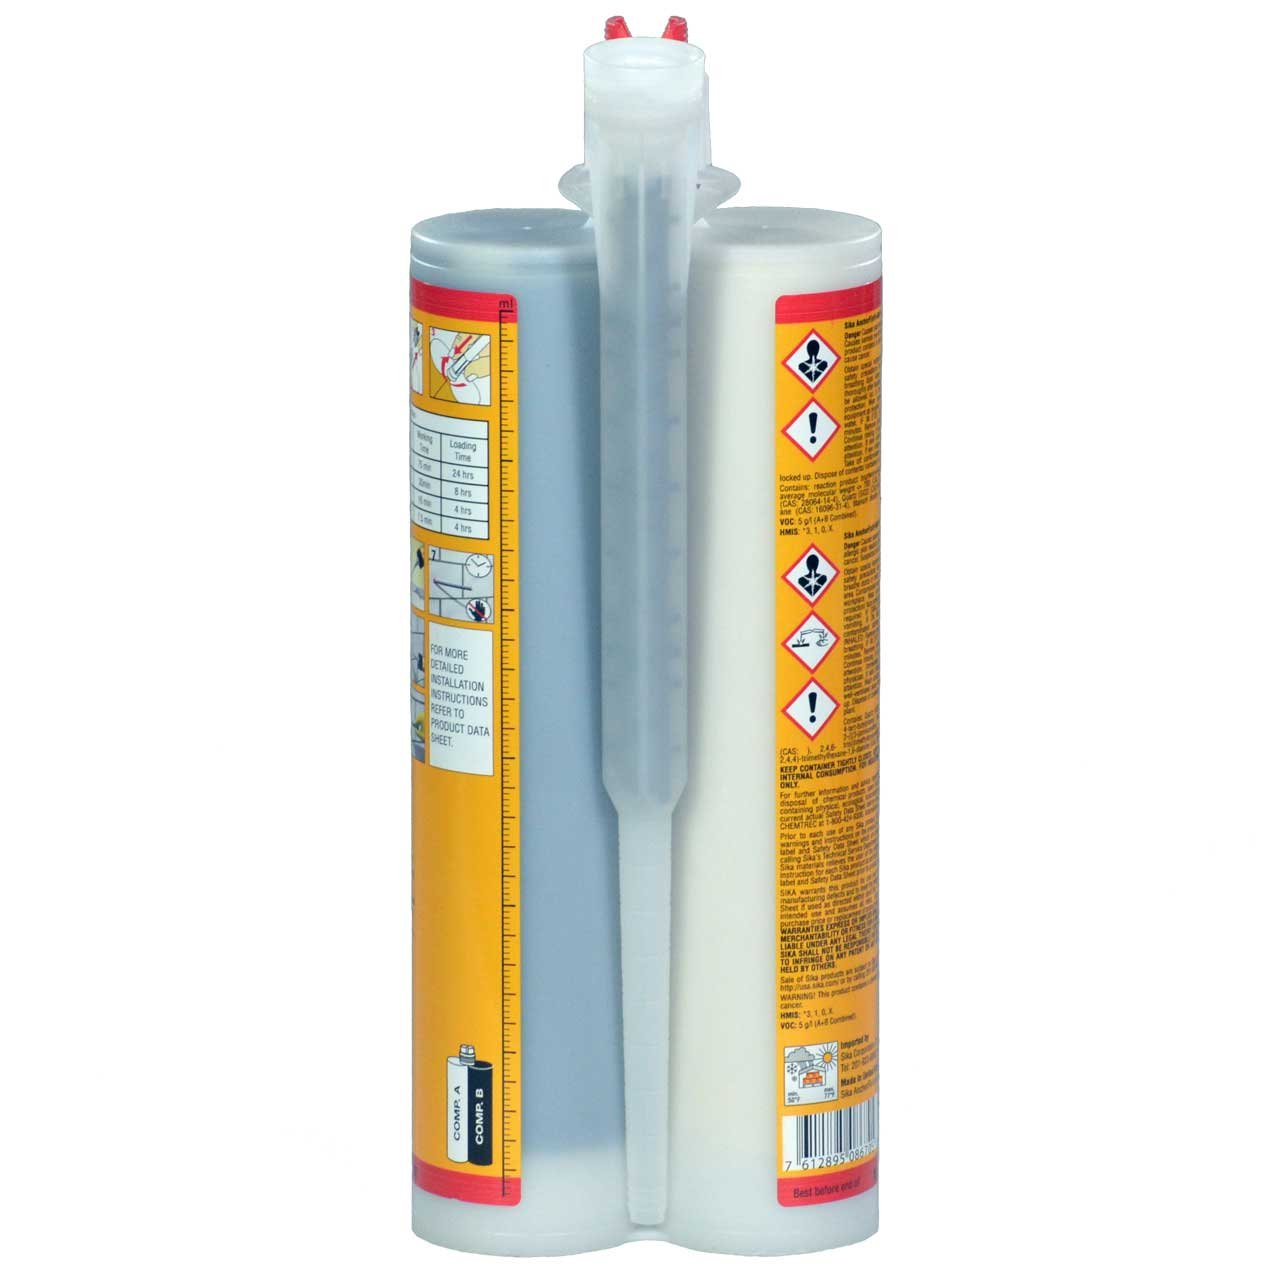 Epoxy Adhesive Applicator, 22 oz. Dual Cartridge Capacity, 25:1 Thrust, AWF Pro with 1 Cartridge, Sika AnchorFix 500: 20 oz Two Component Epoxy, High Performance, Concrete Anchoring System by Sika (Image #4)